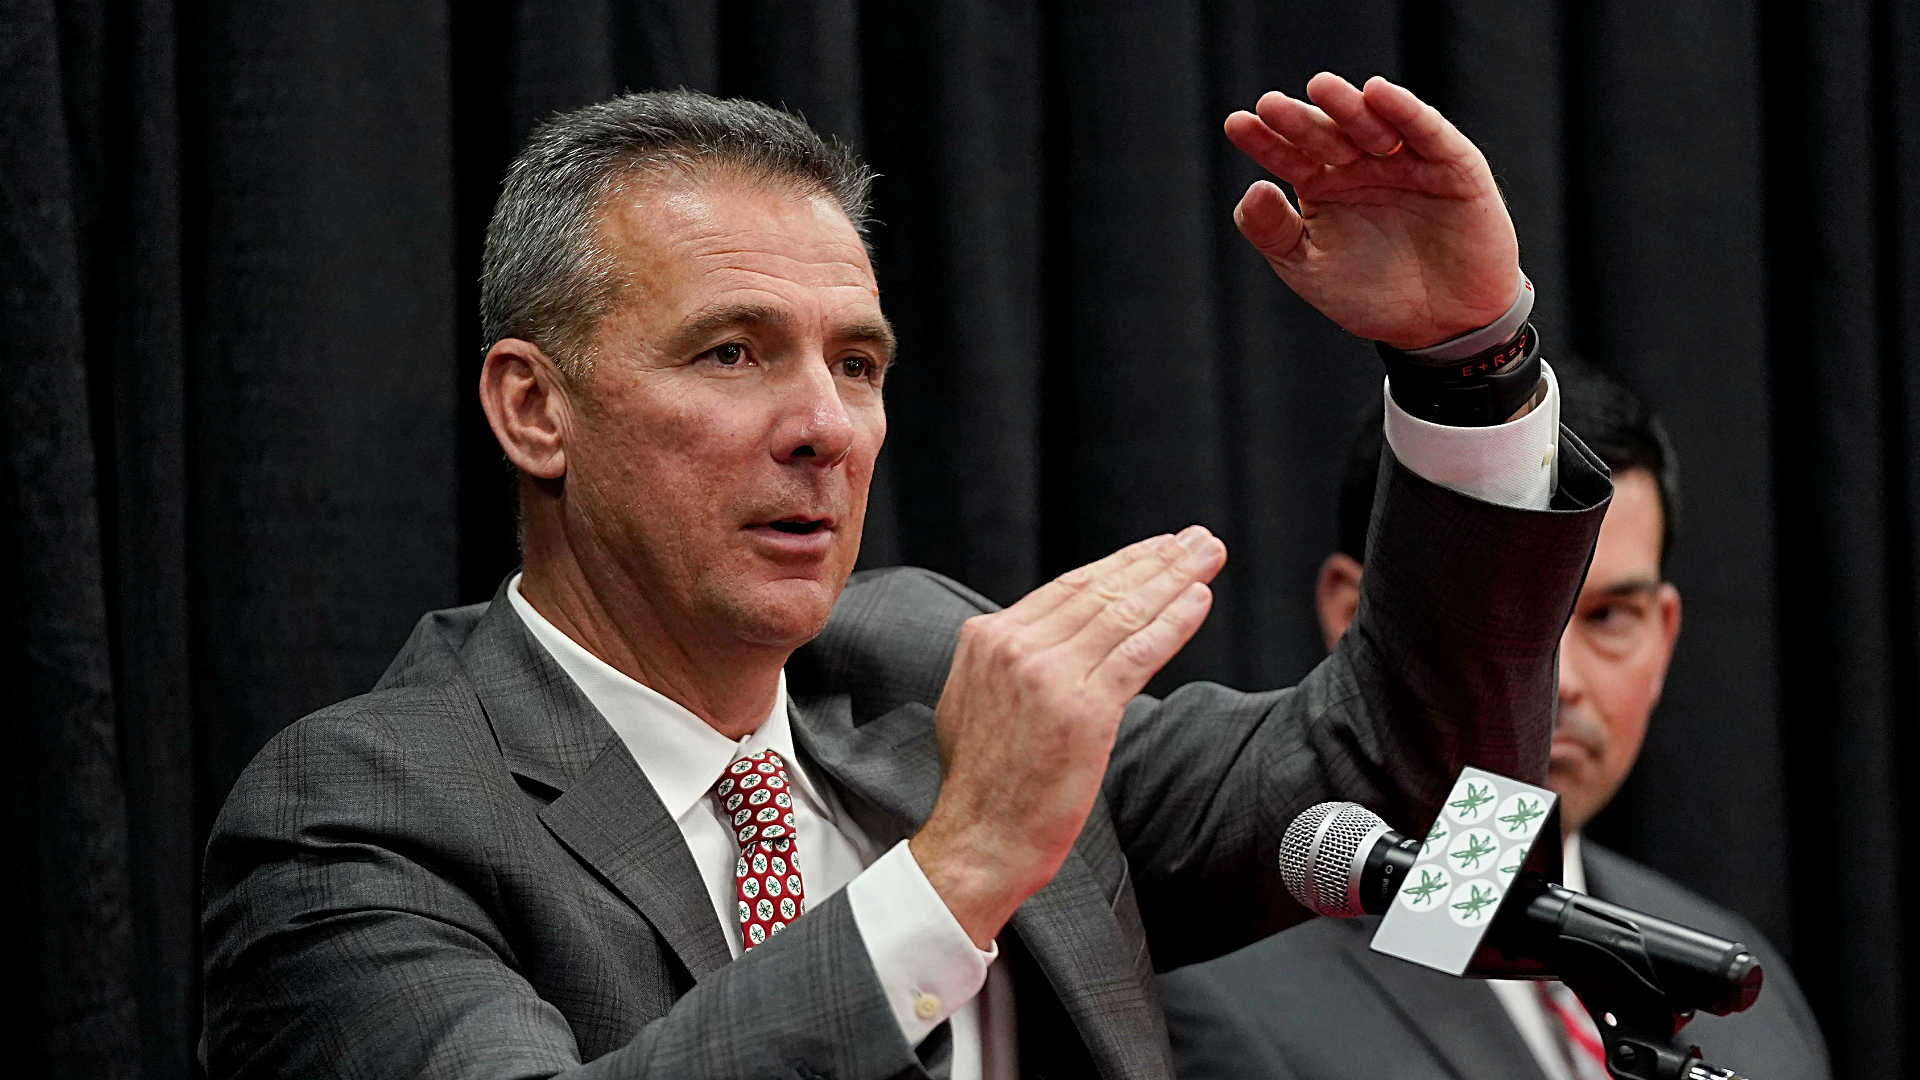 What is Urban Meyer's legacy at Ohio State? Depends on which side you ask